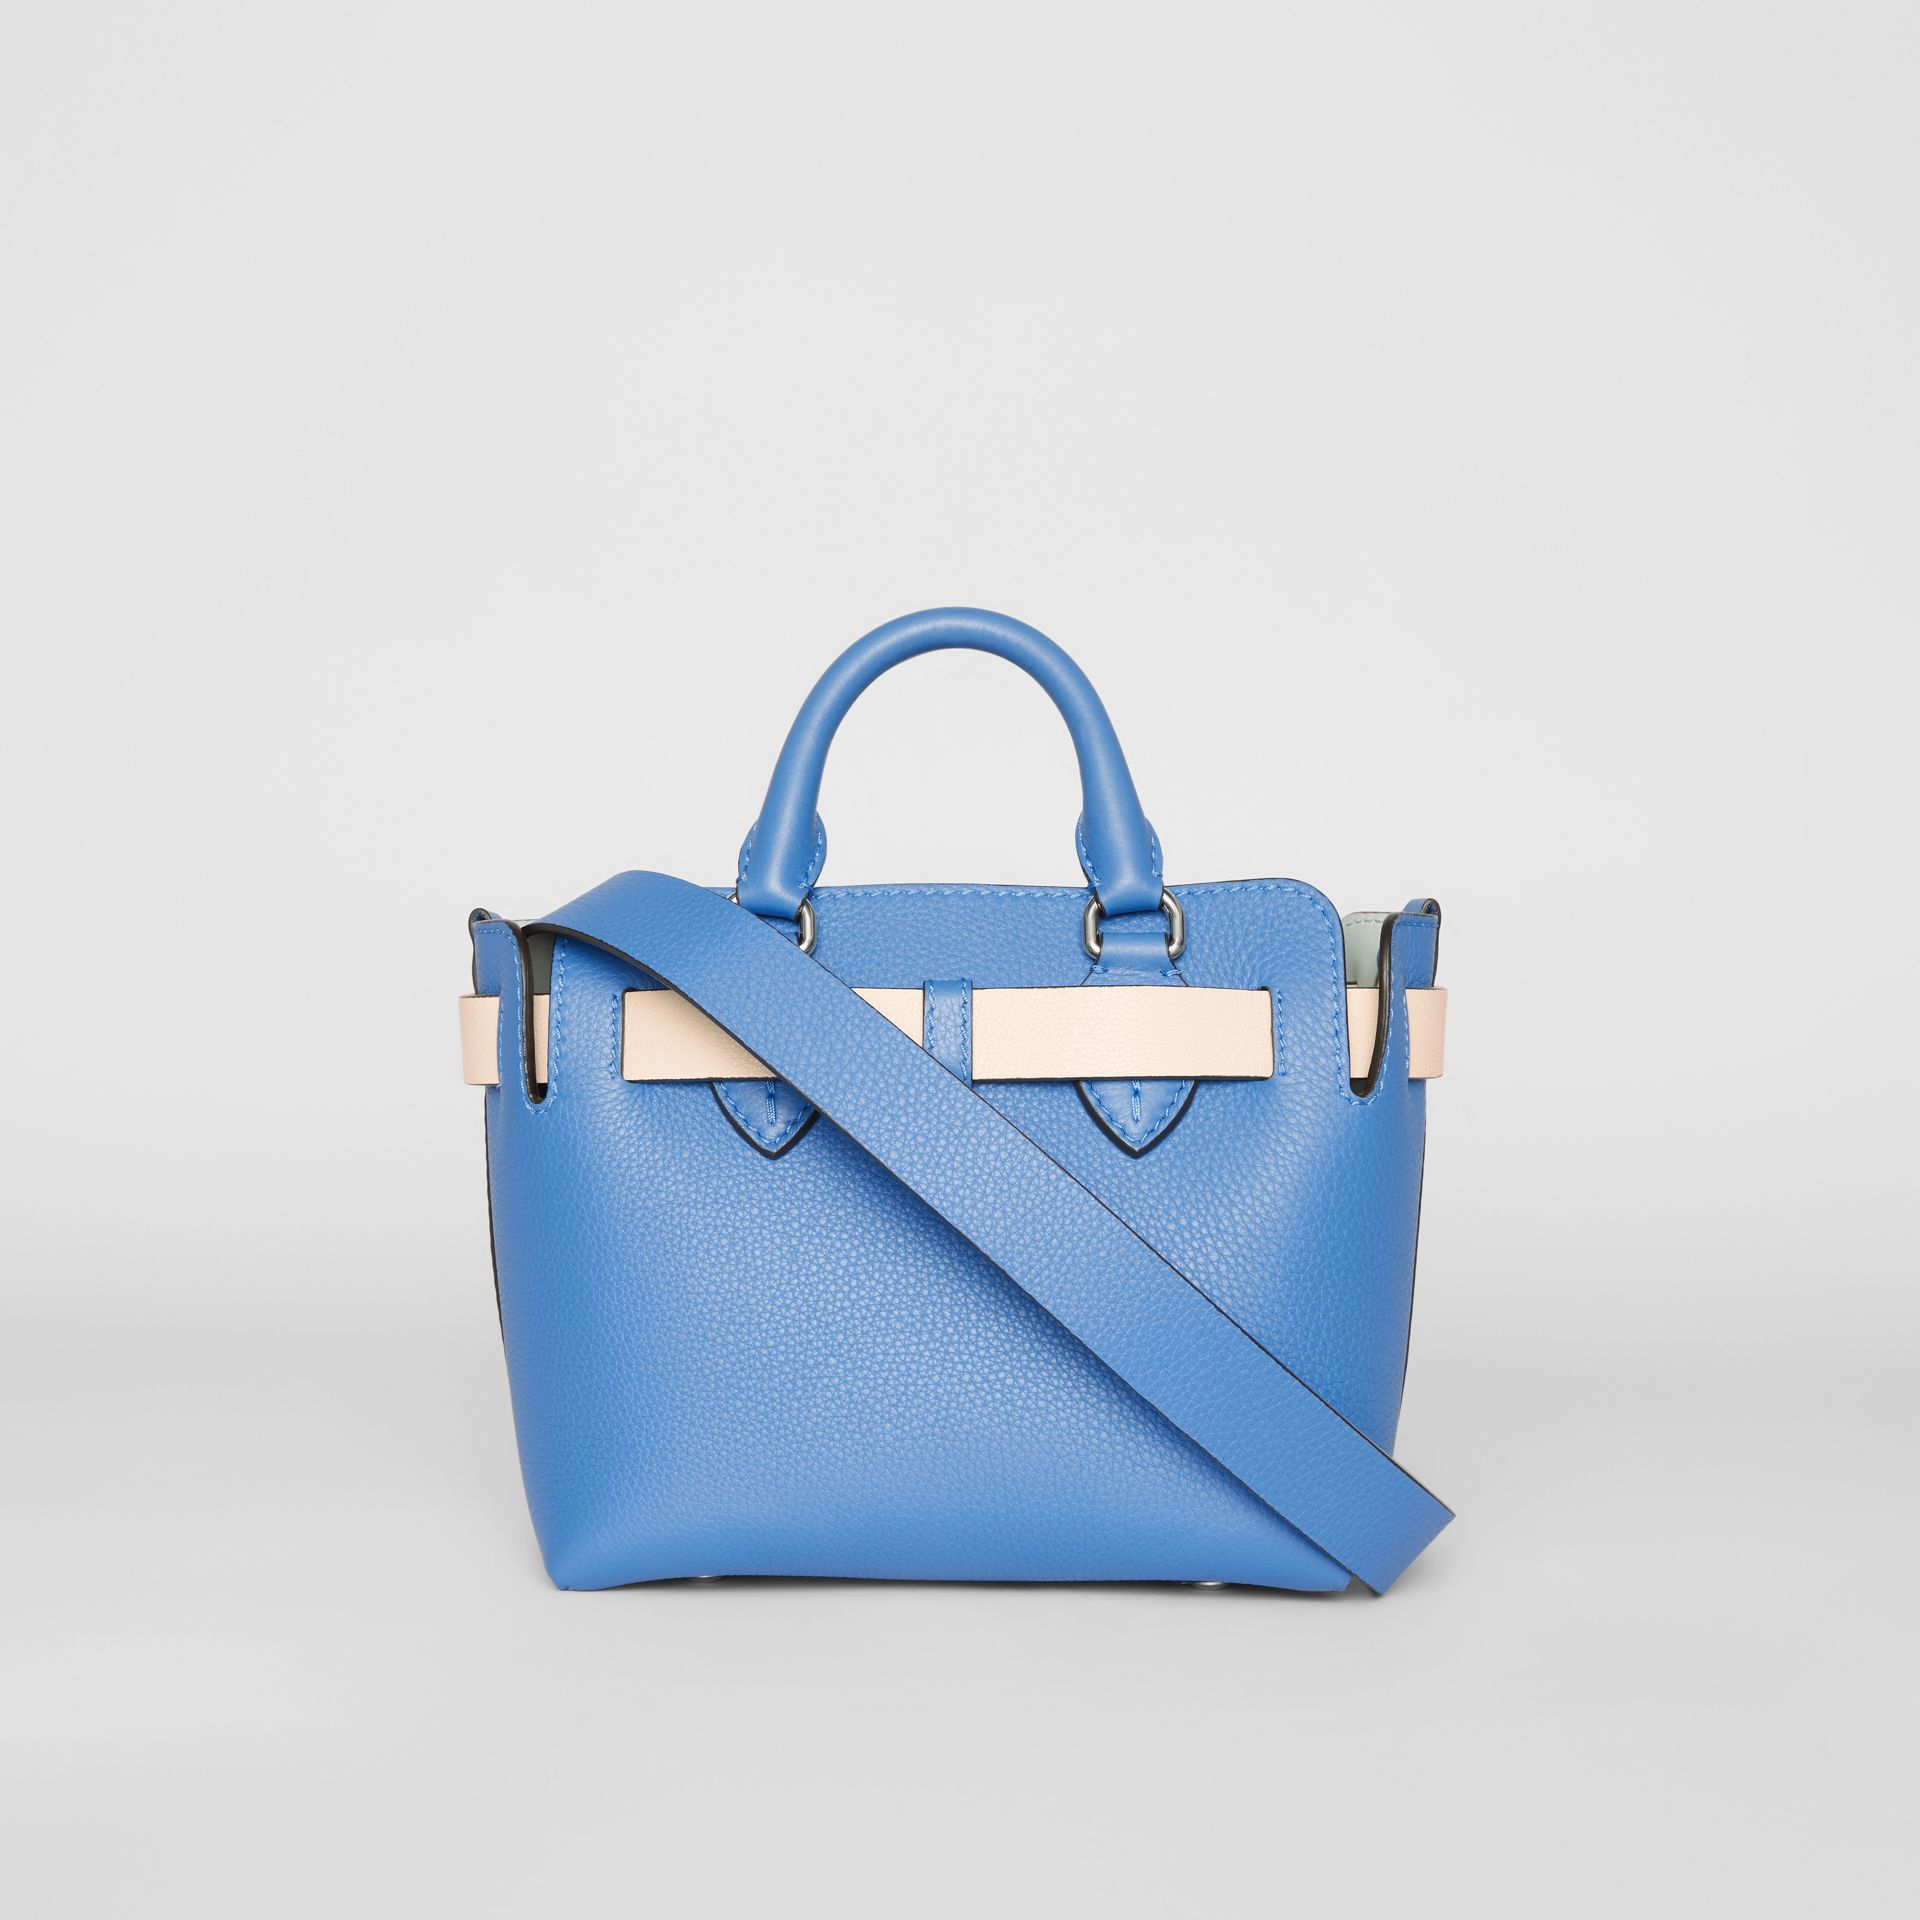 Borsa The Belt mini in pelle (Blu Ortensia) - Donna | Burberry - immagine della galleria 7